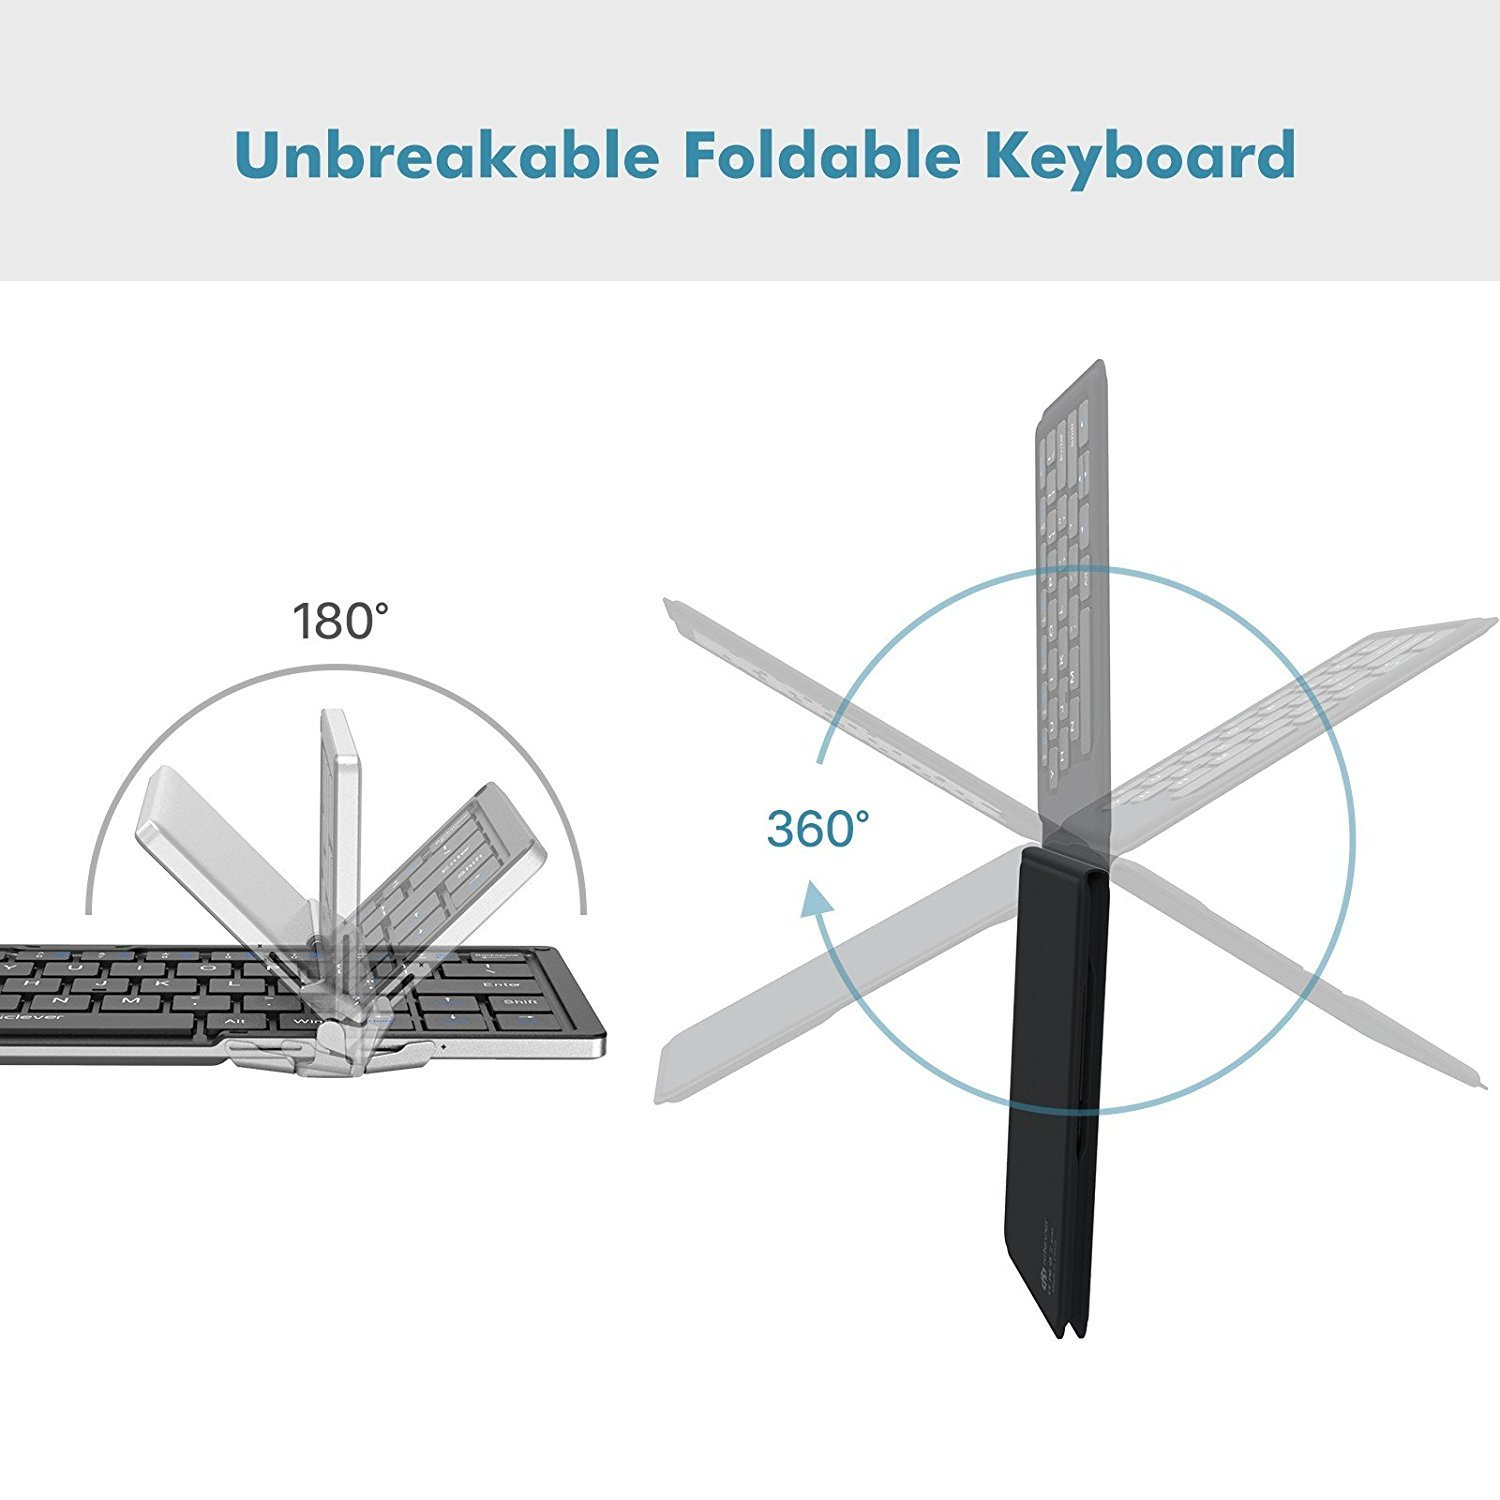 iClever Wireless Folding Designed, Ultra Slim Rechargeable Bluetooth Keyboard for Windows iOS Mac Android Tablets Smartphones, Gray (IC-BK06) by iClever (Image #6)